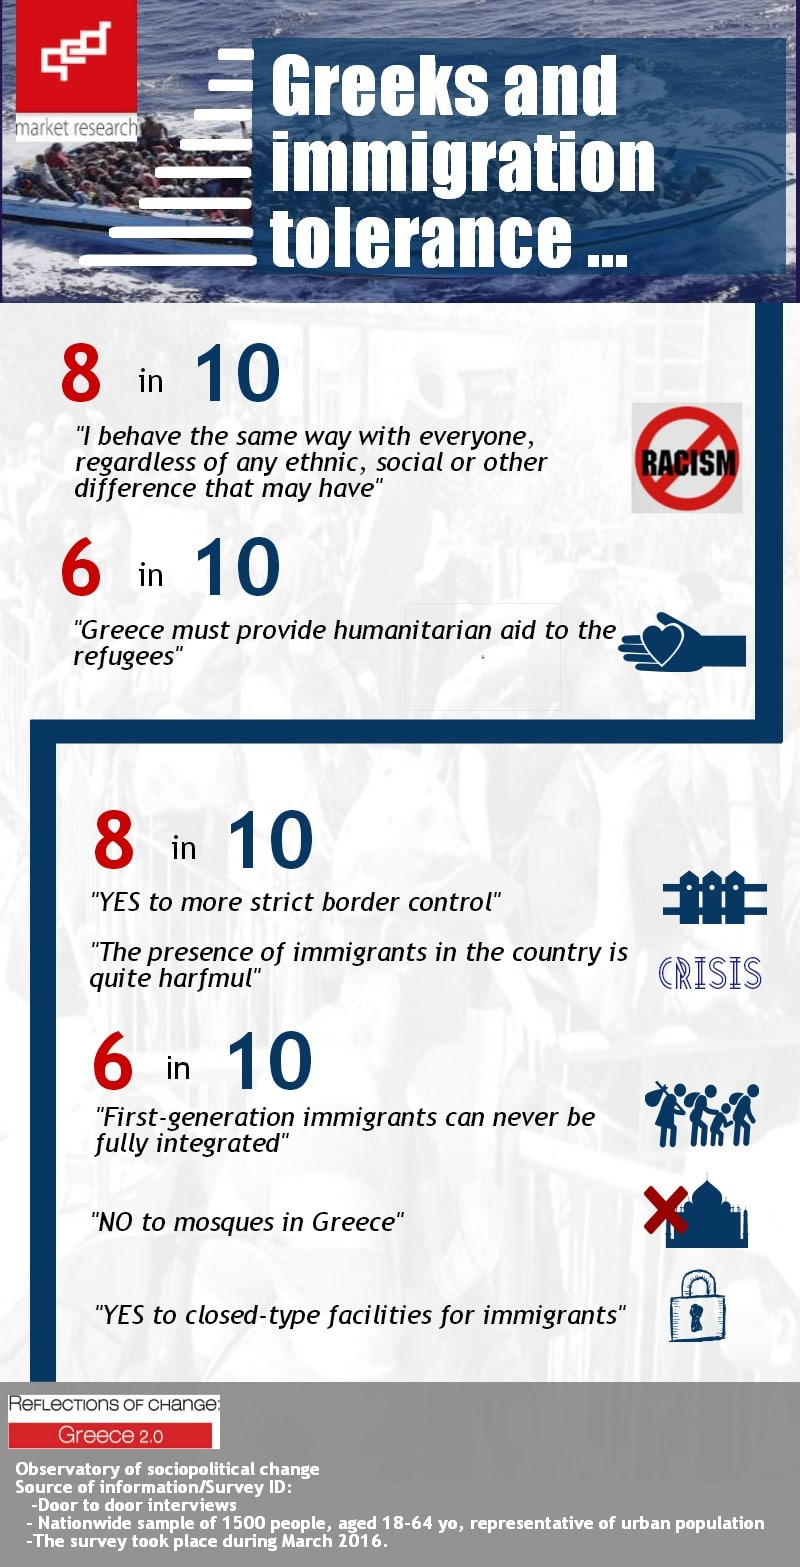 2016-04-20-qed-infographic-greece-2-0-english